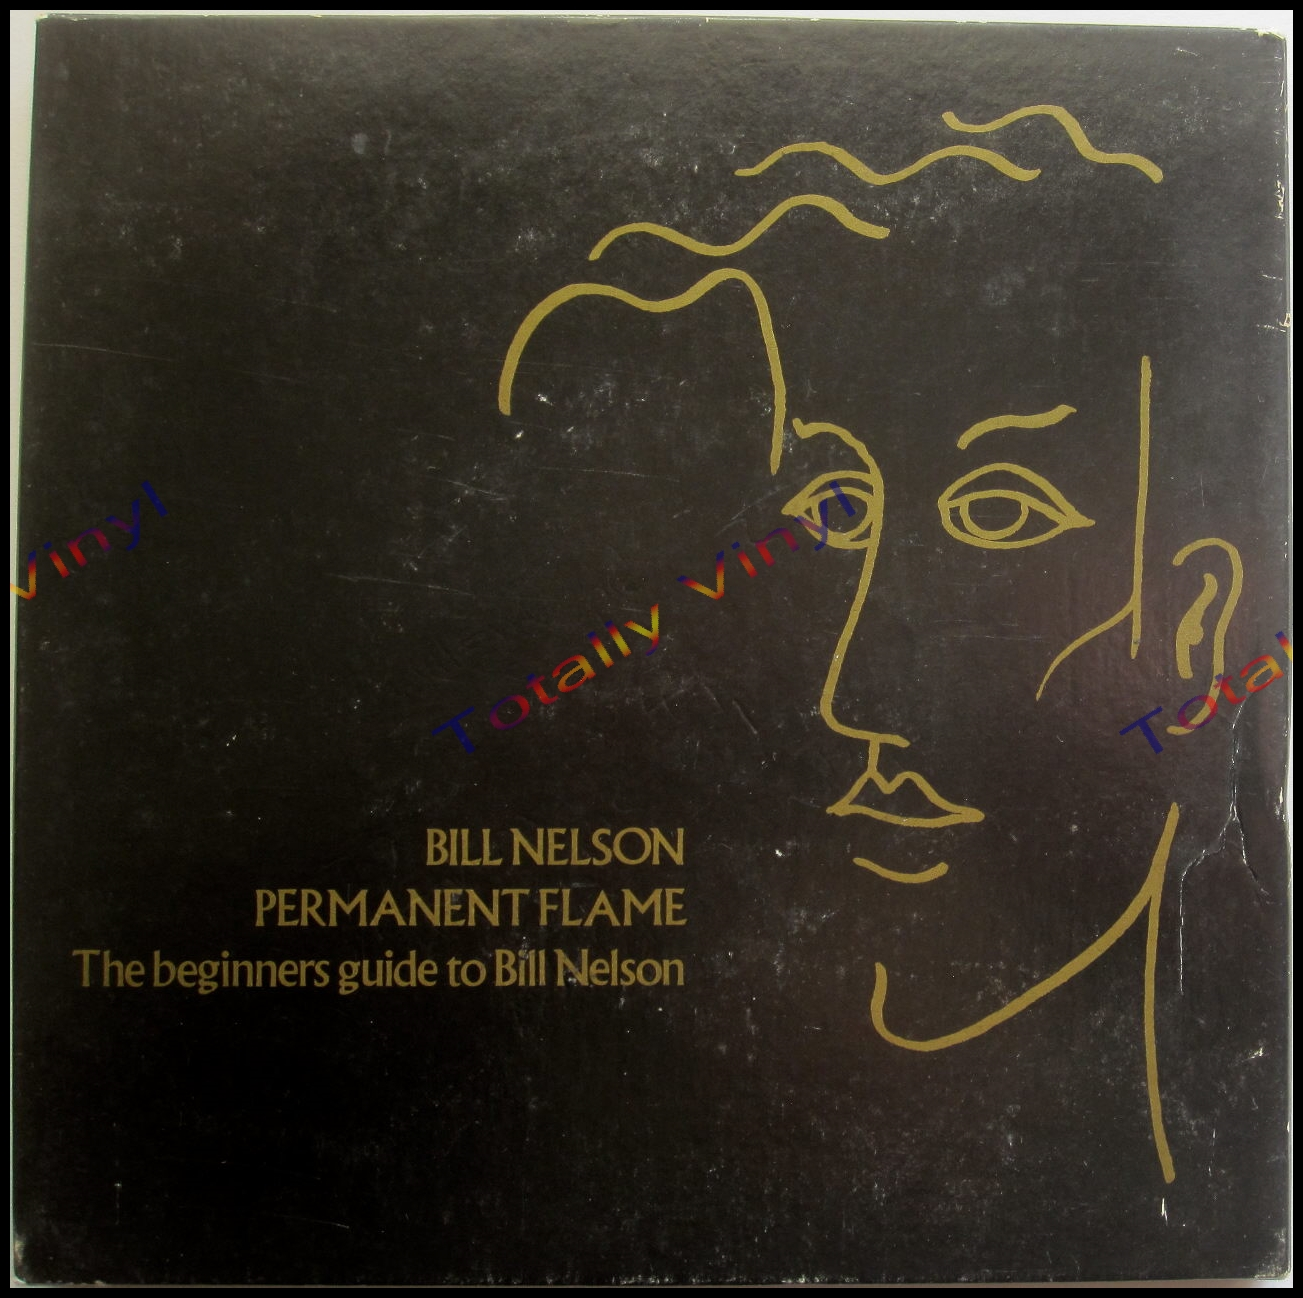 Bill Nelson - The Love That Whirls (Diary Of A Thinking Heart) / La Belle Et La Bete (Beauty And The Beast)